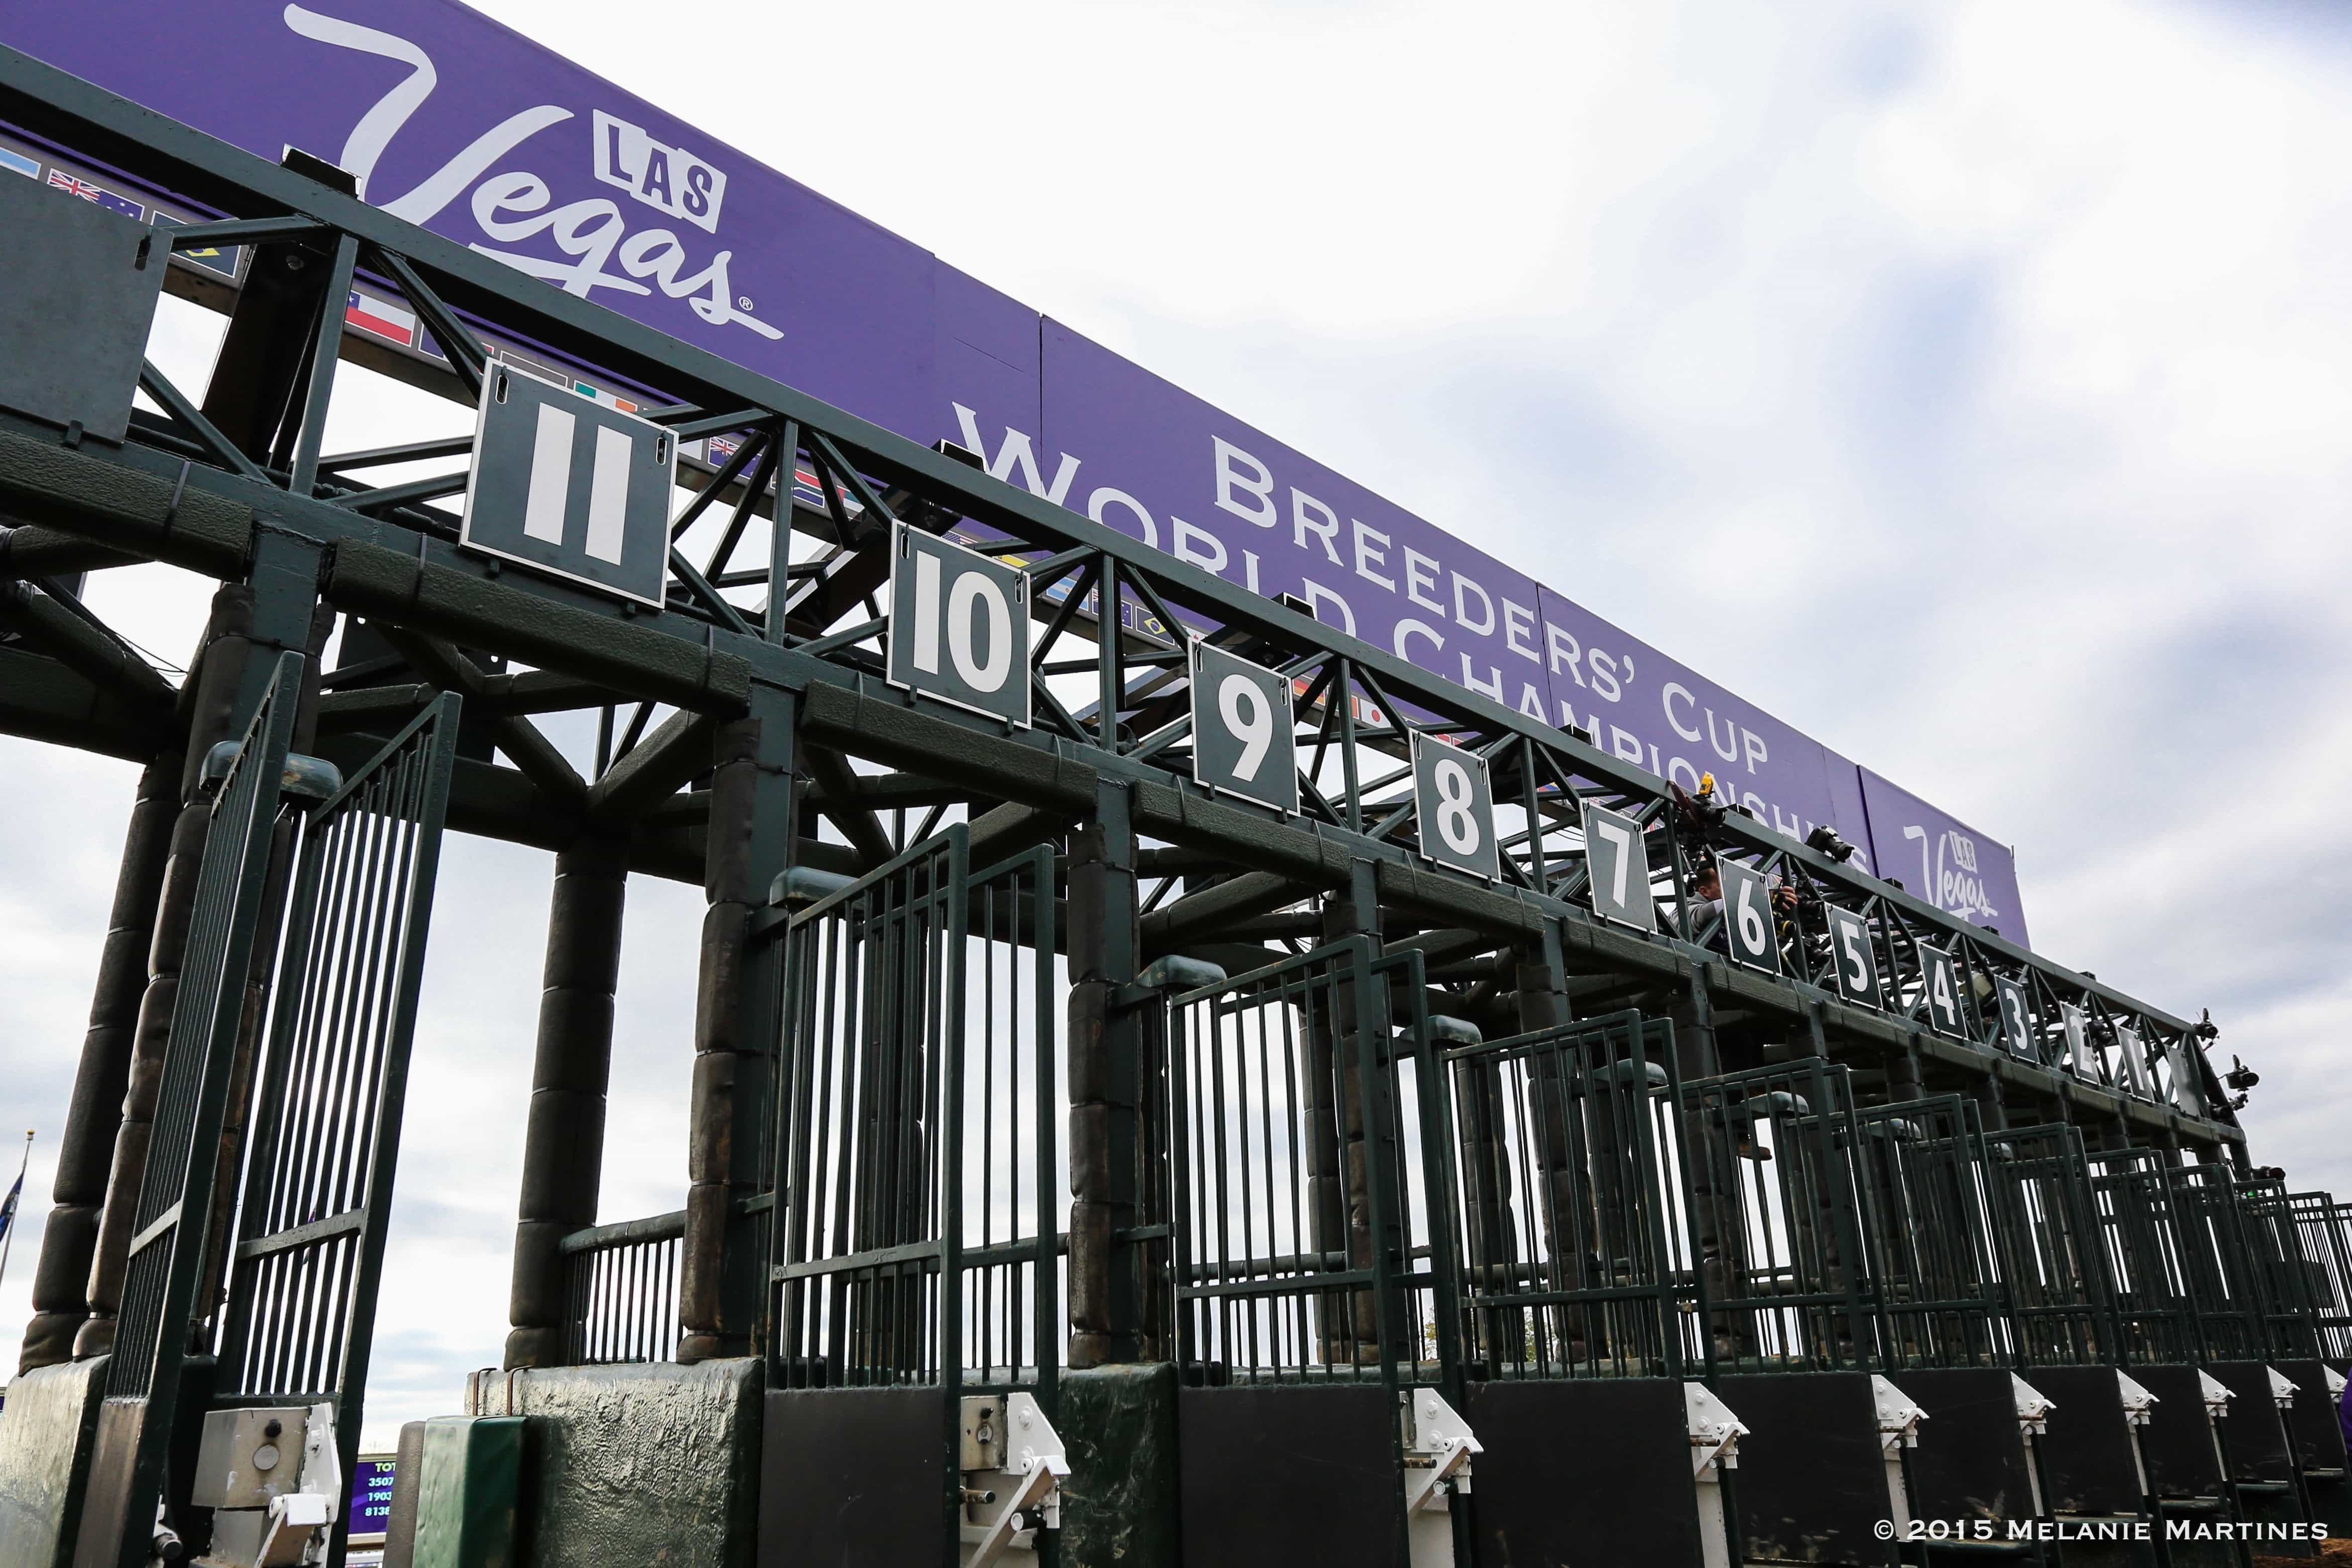 Breeders' Cup GATE Photo Credit: Melanie Martines